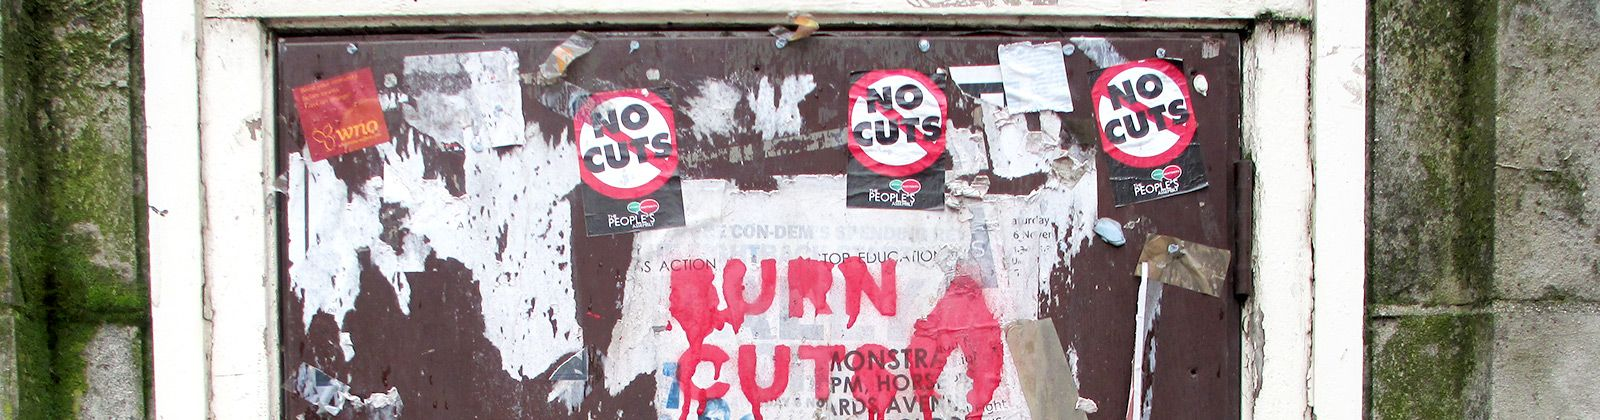 Stencil and stickers on a wall in London with the words No Cuts